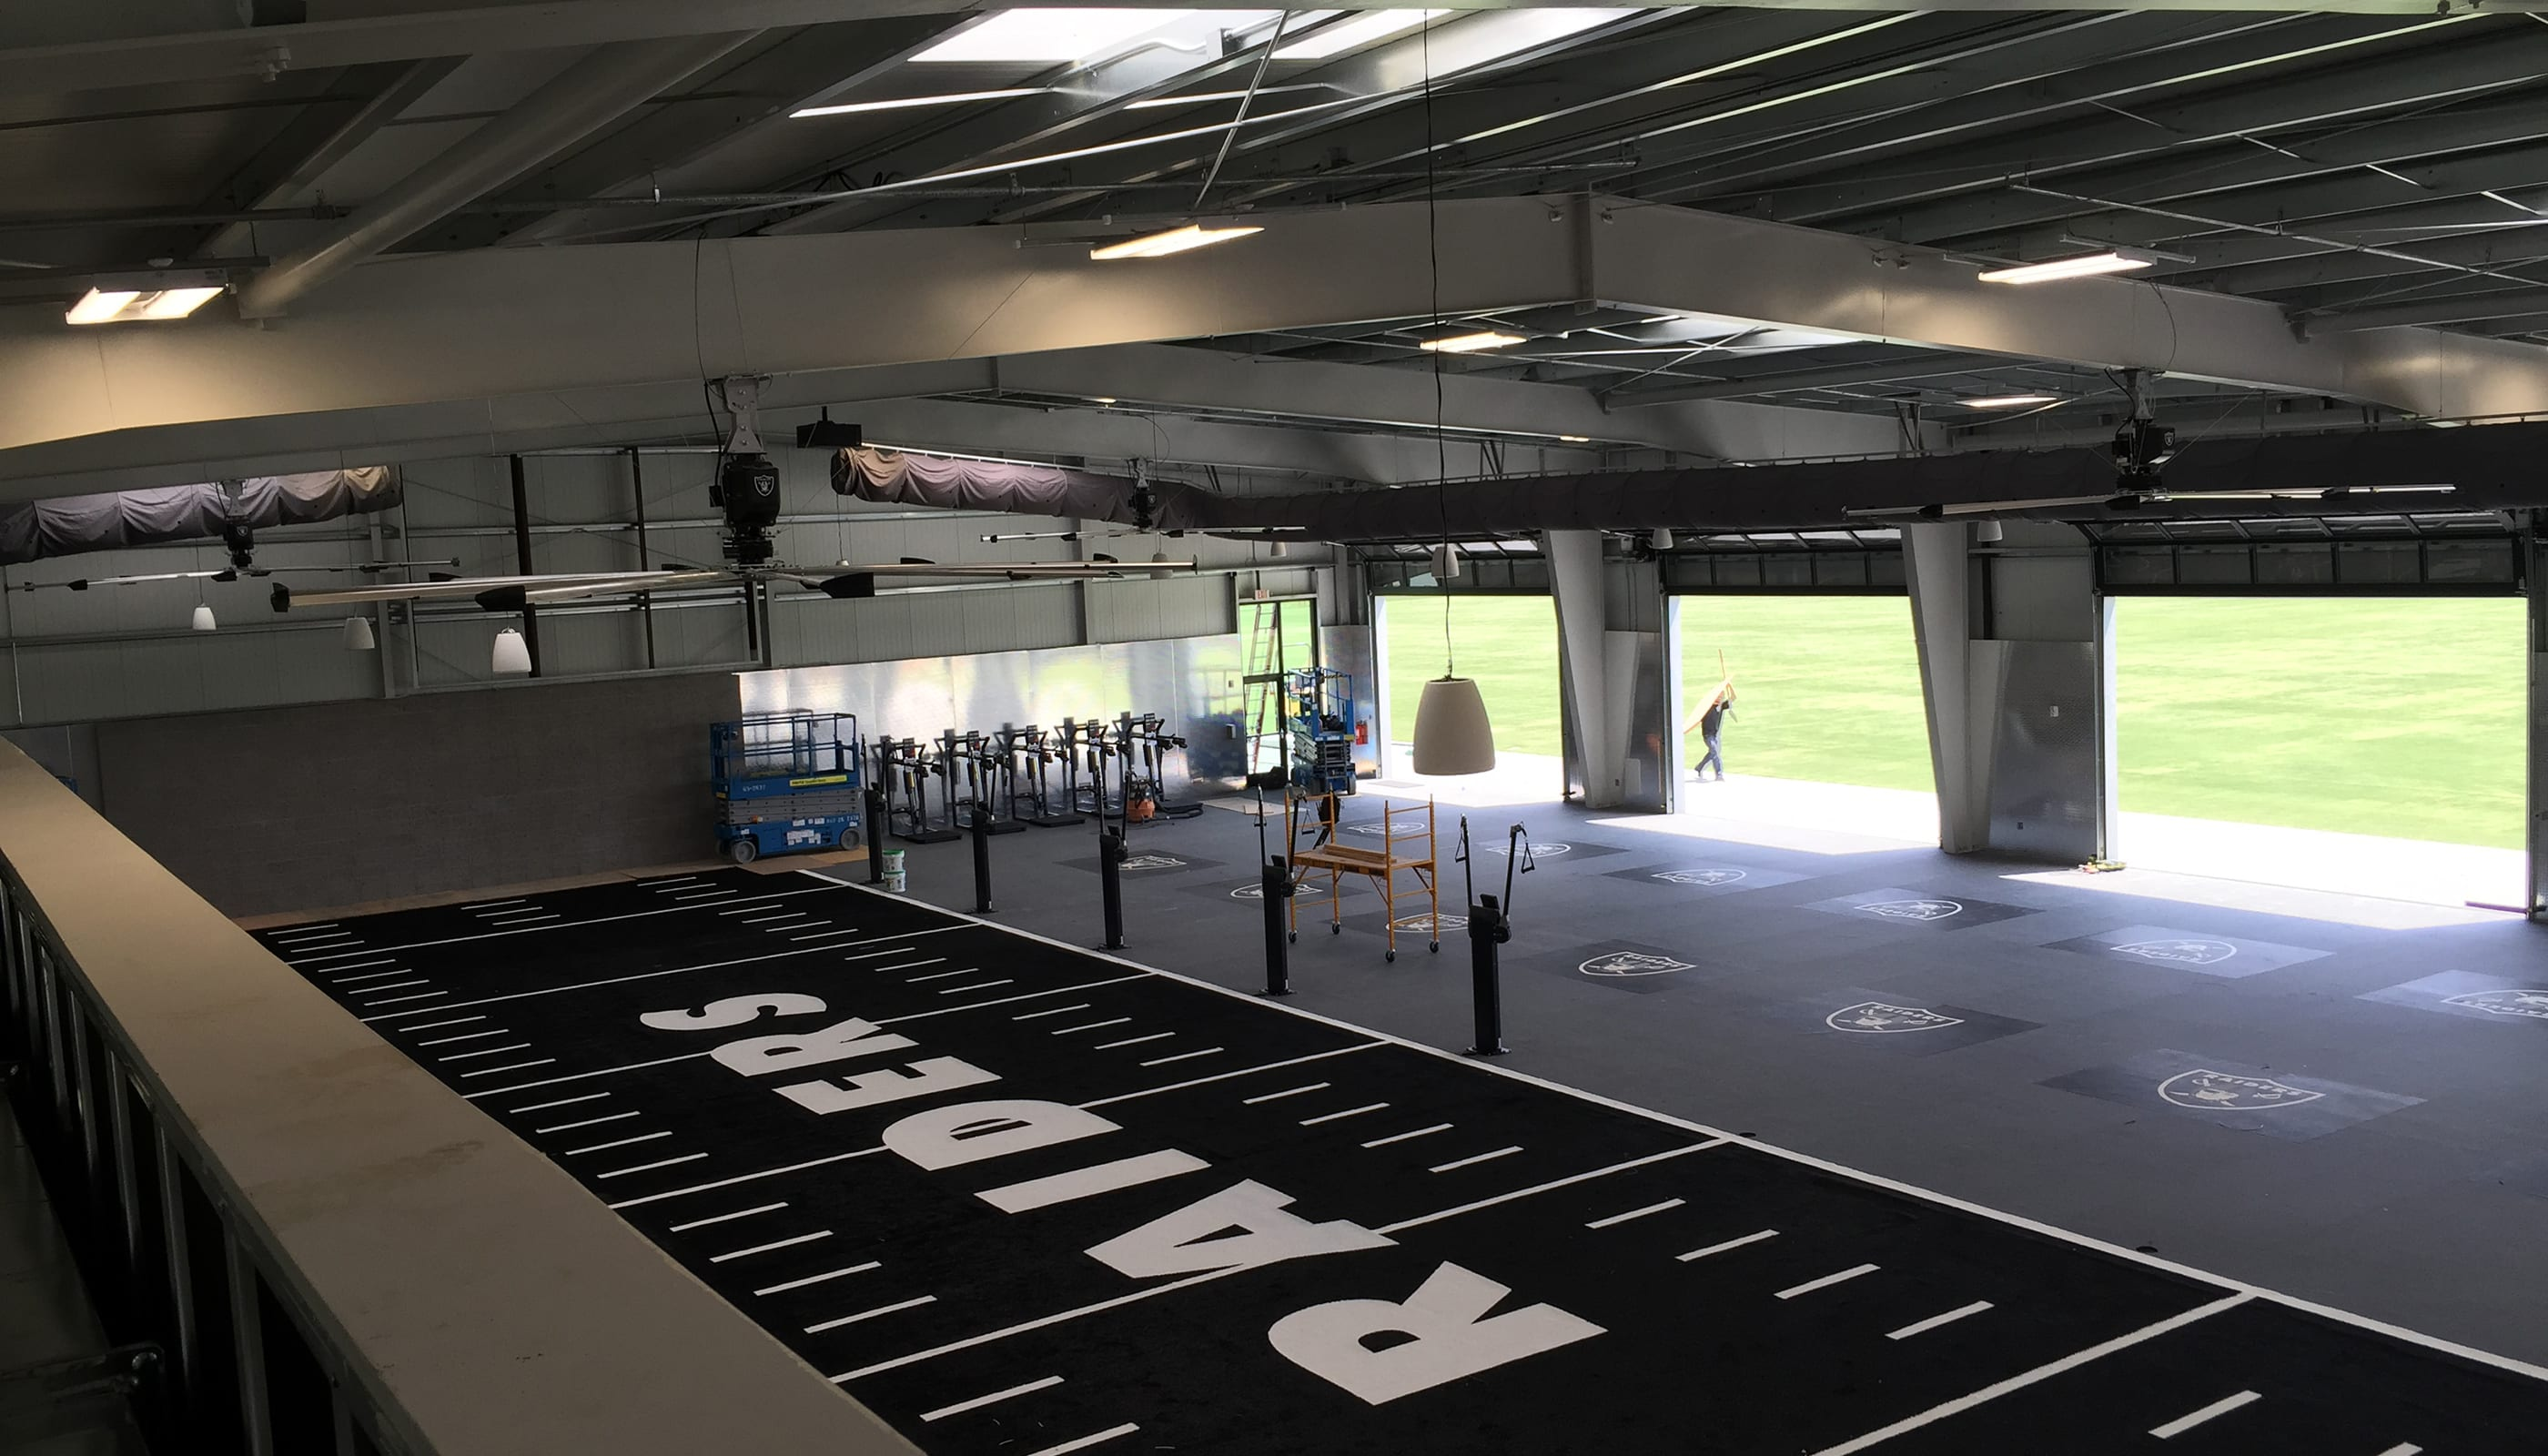 Oakland Raiders Practice Facility - Commercial Architecture